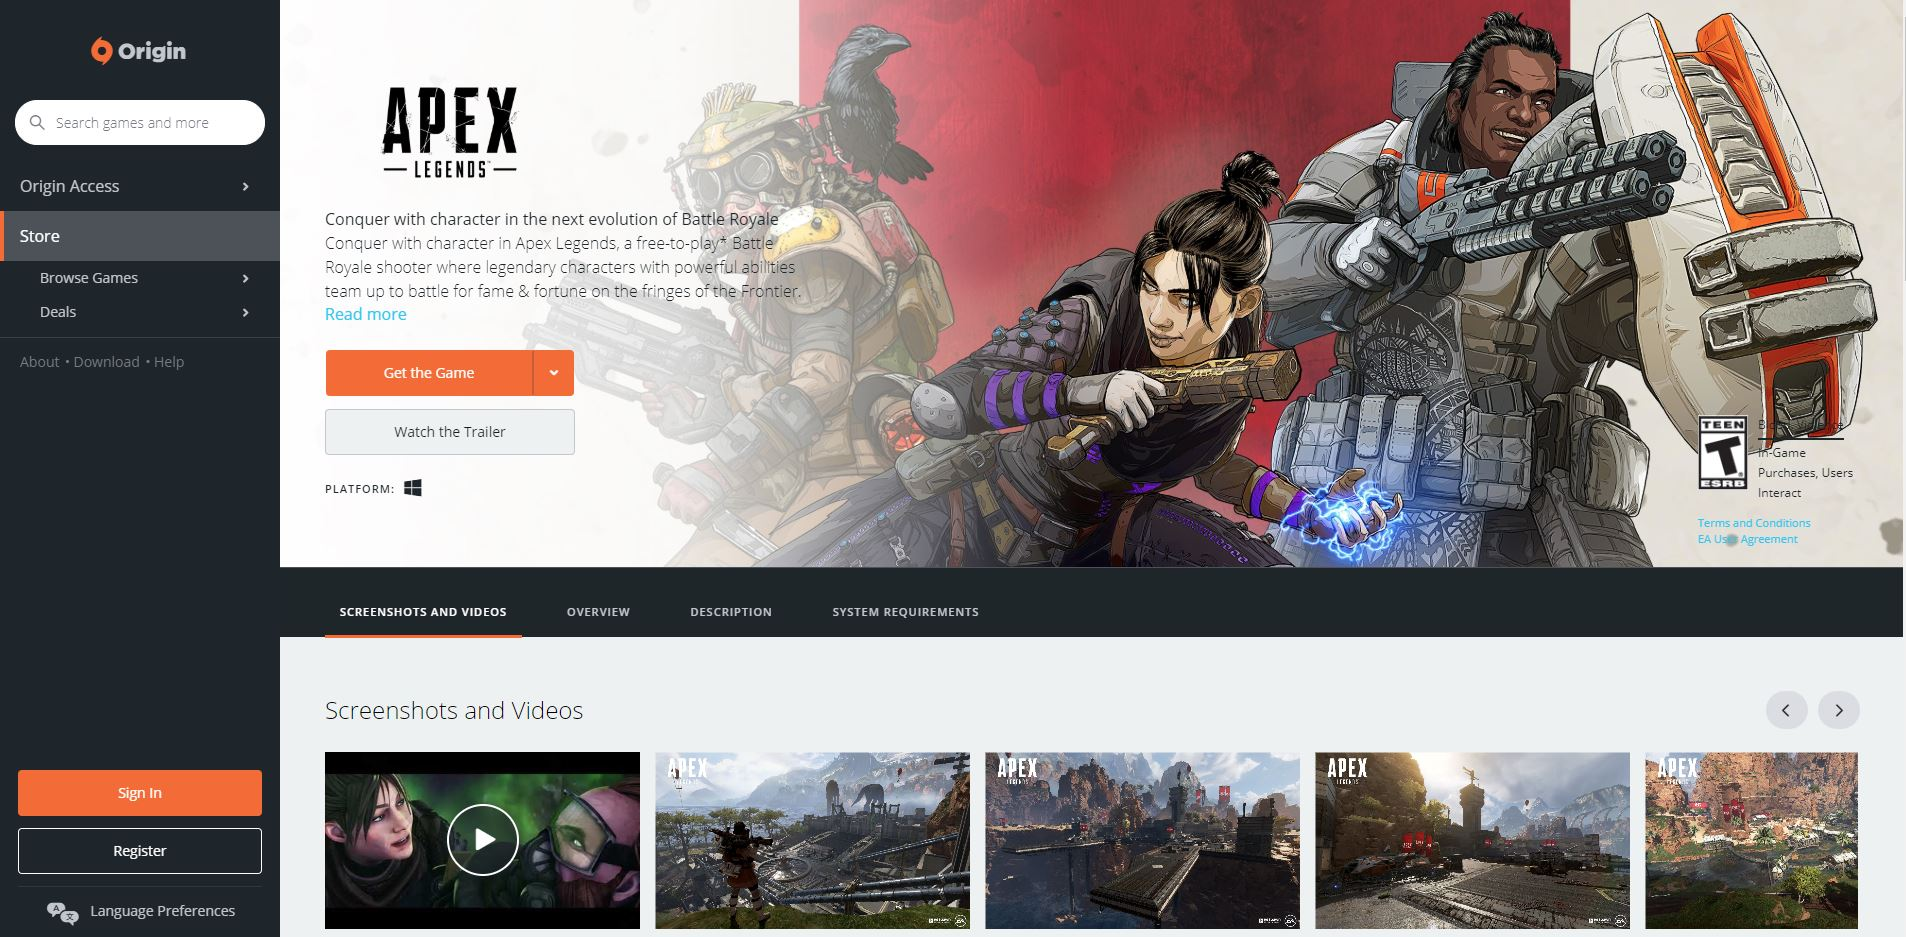 How to fix the Apex Legends failed to launch error